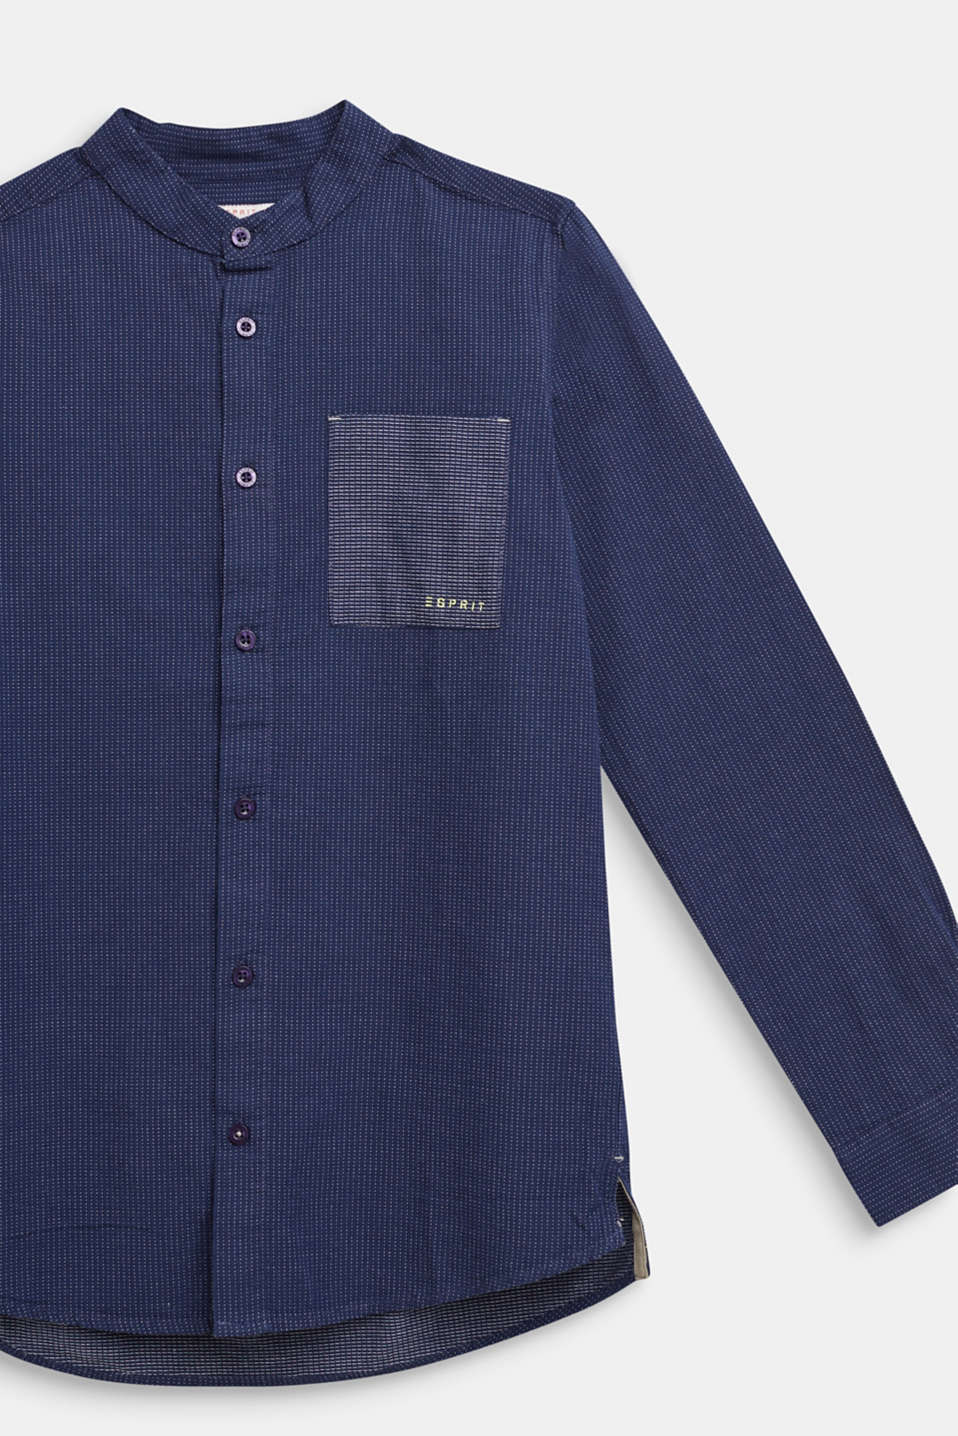 Shirt with band collar, 100% cotton, LCMIDNIGHT BLUE, detail image number 2